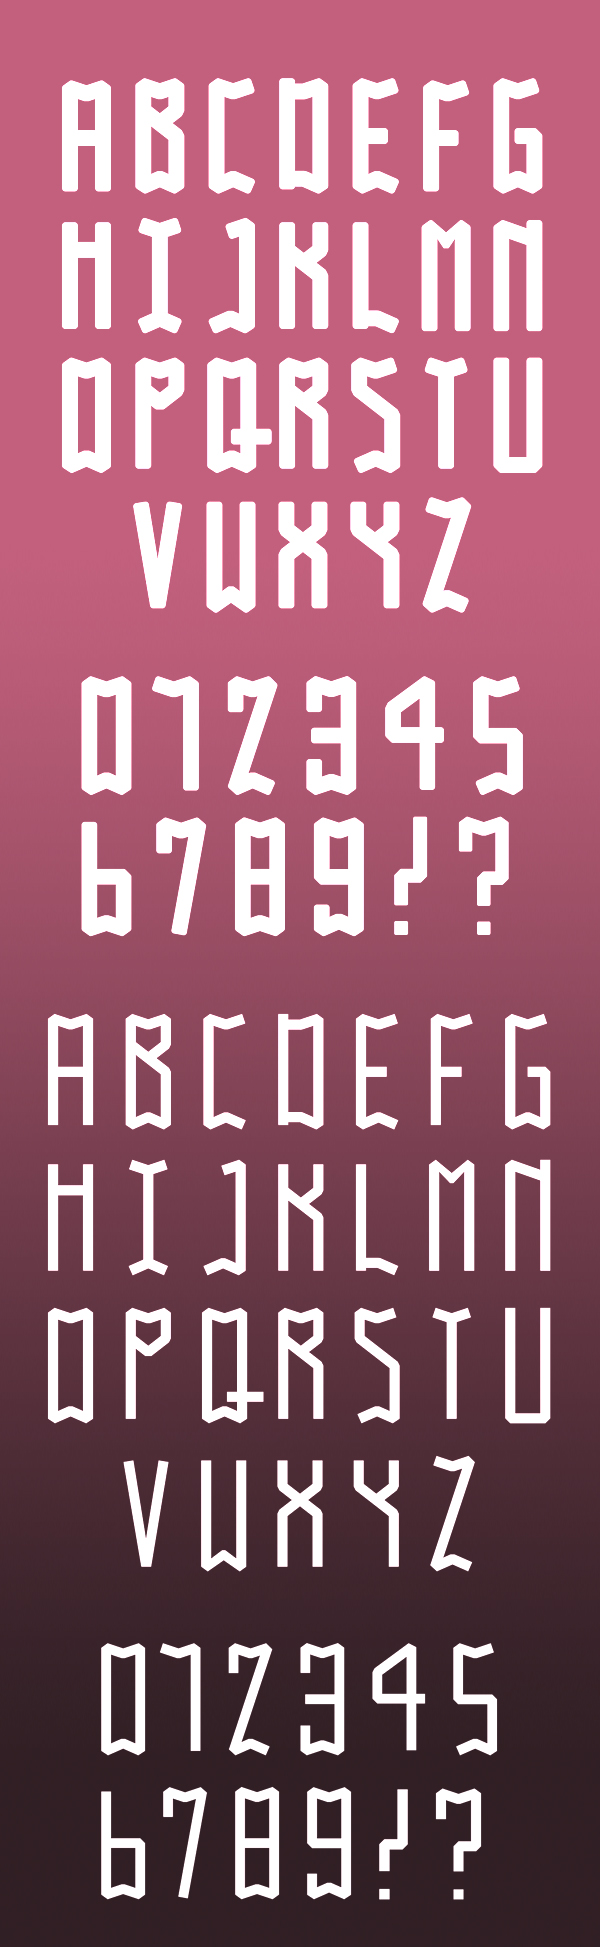 Gobo font letters